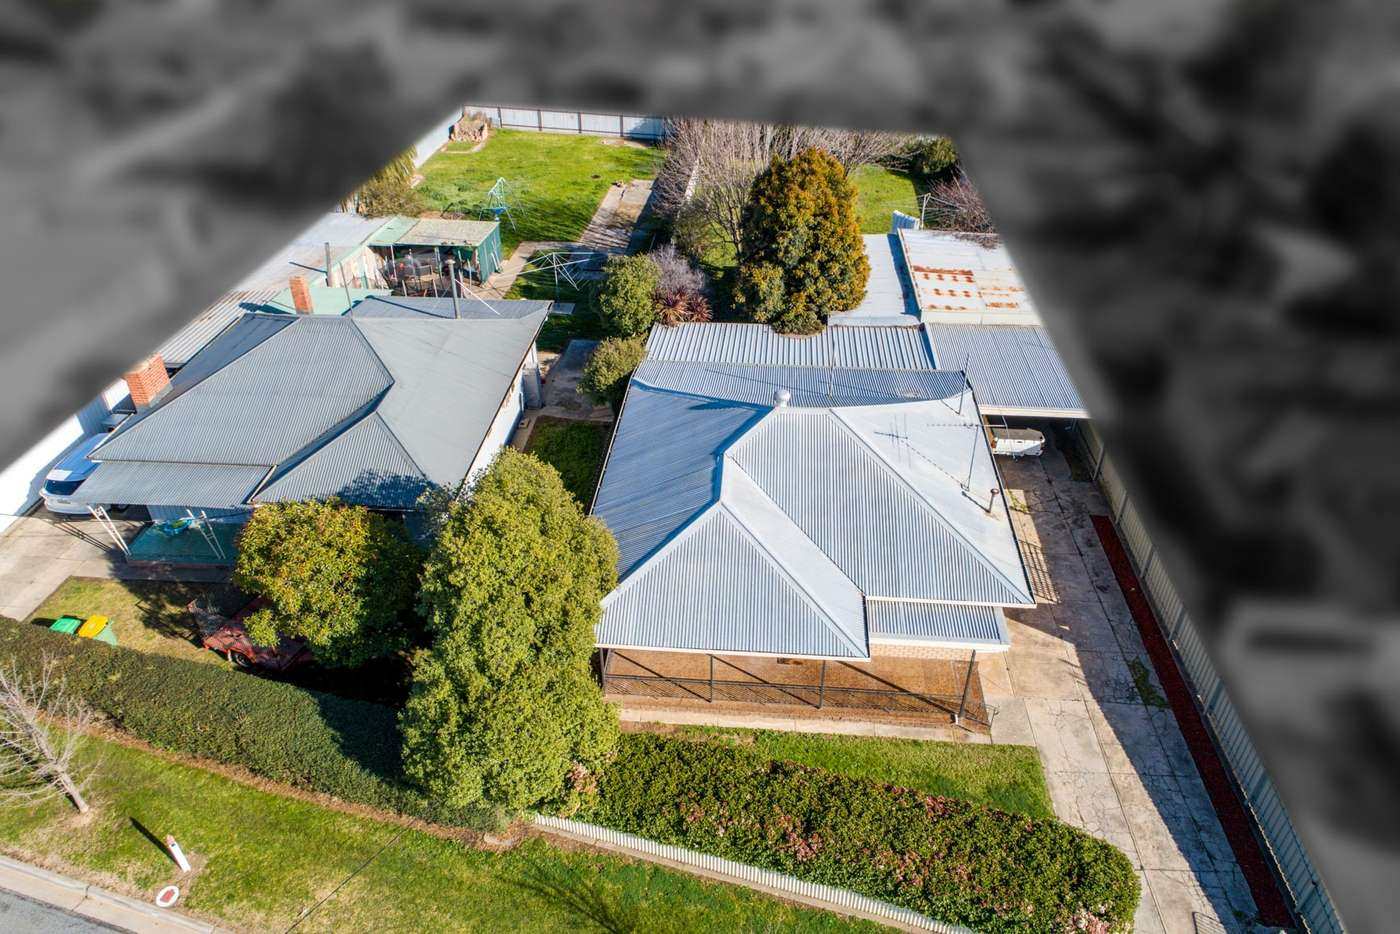 Main view of Homely house listing, 87 - 89 Phillips Street, Wodonga VIC 3690